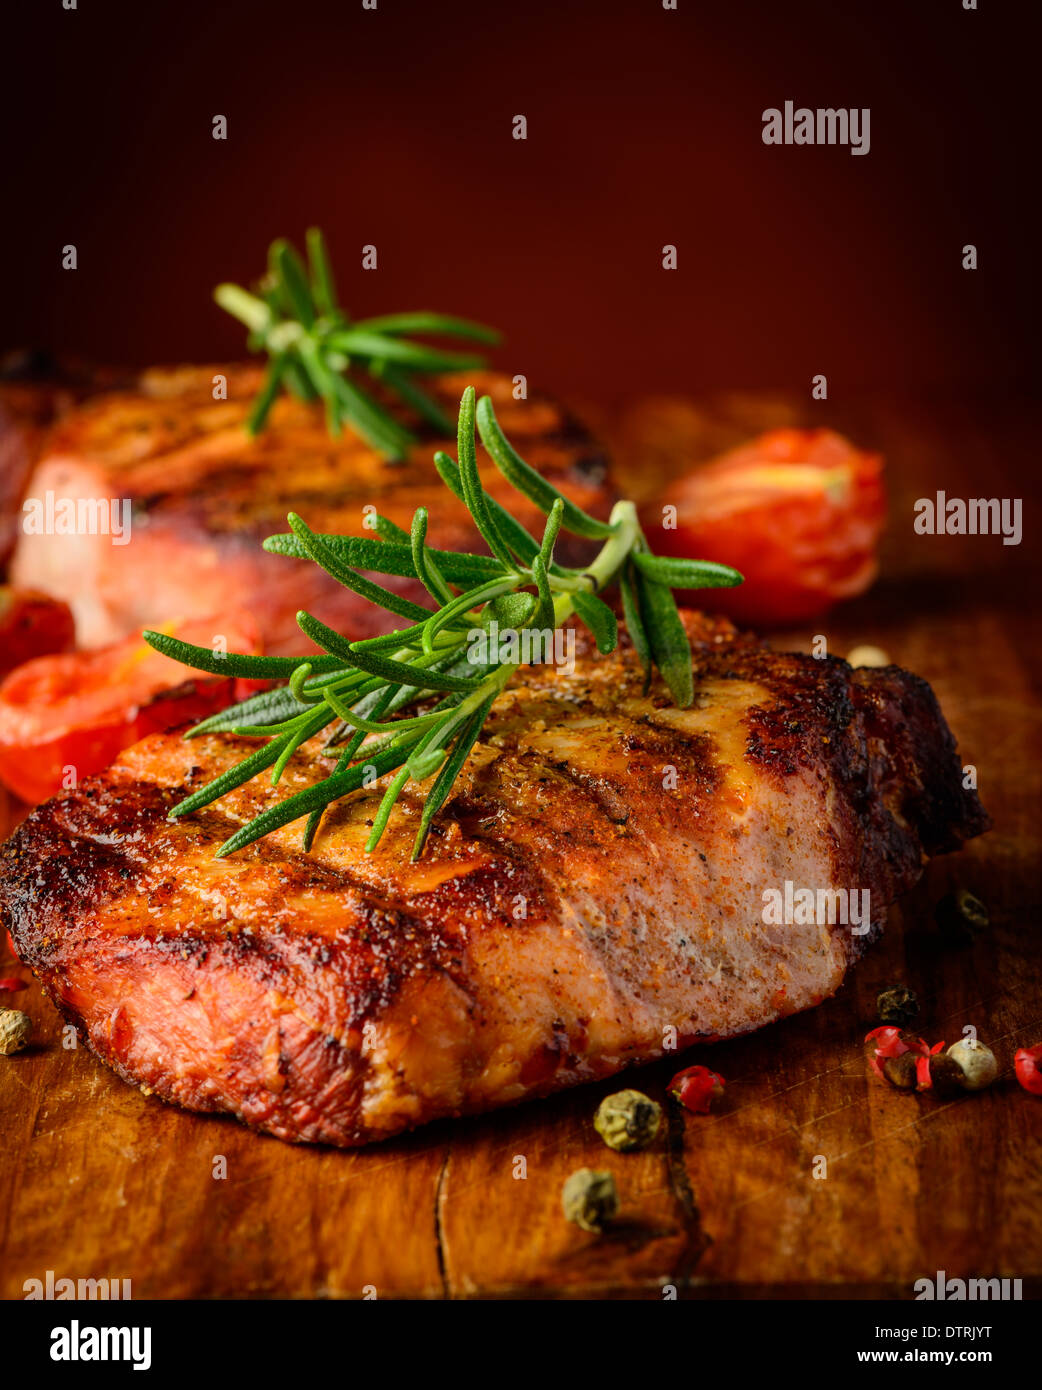 still life with grilled meat steak closeup detail and spices Stock Photo